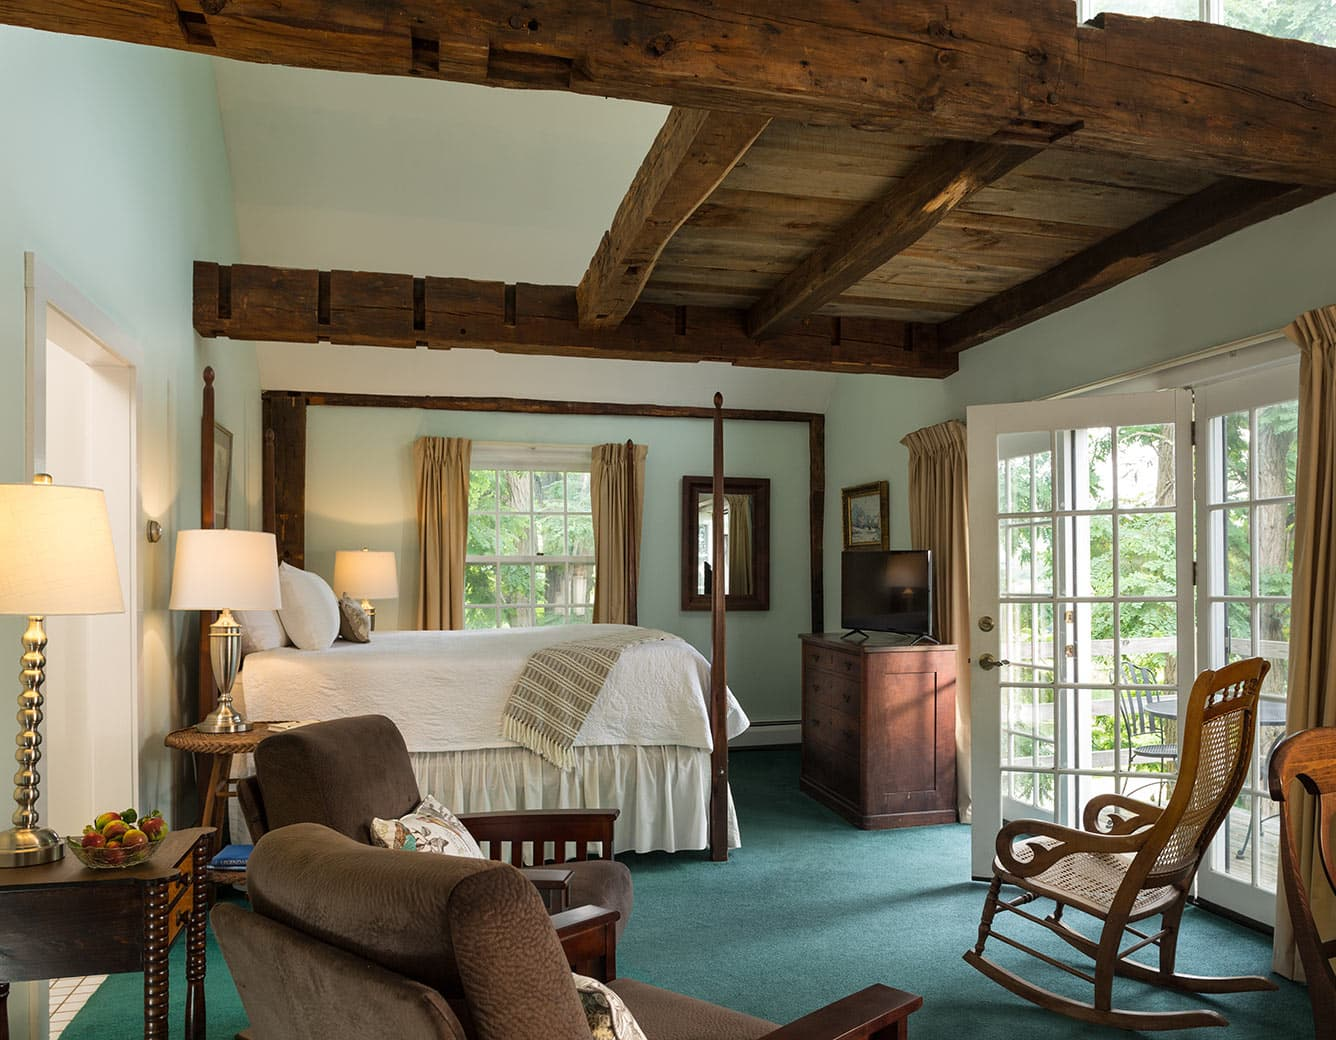 Room 17 with Bed, Barn Loft, Chairs, and French Doors